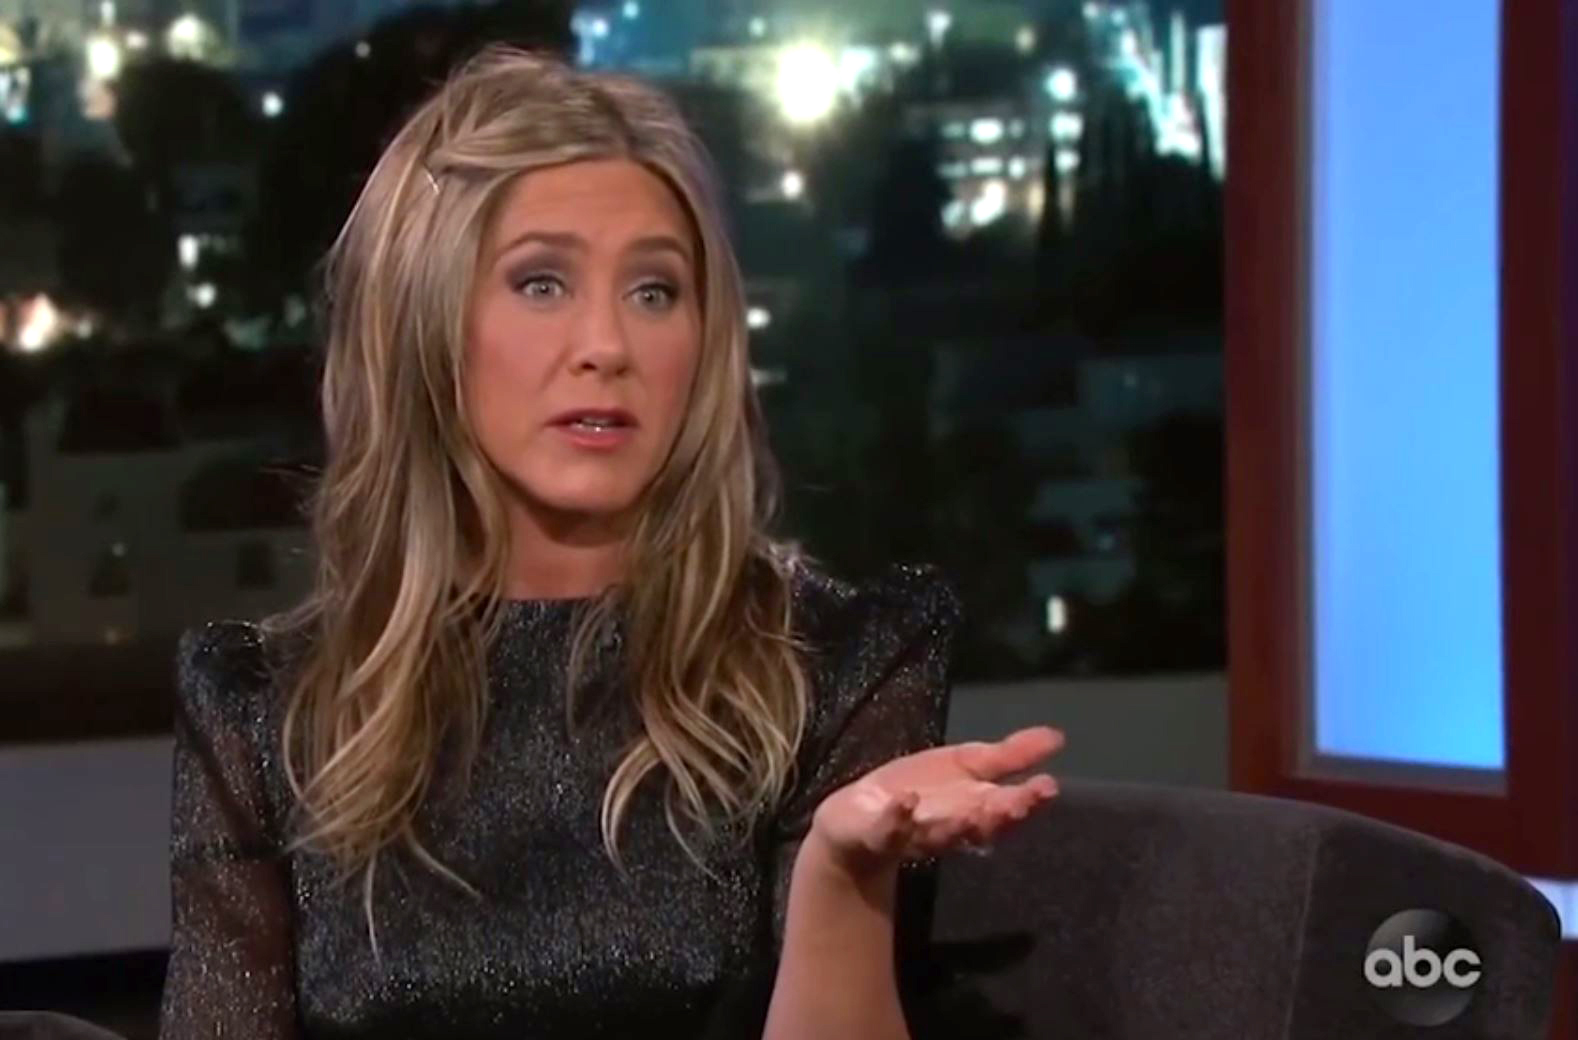 Picture: ABC Jennifer Aniston recalls Jimmy Kimmel's daughter pooping in her backyard